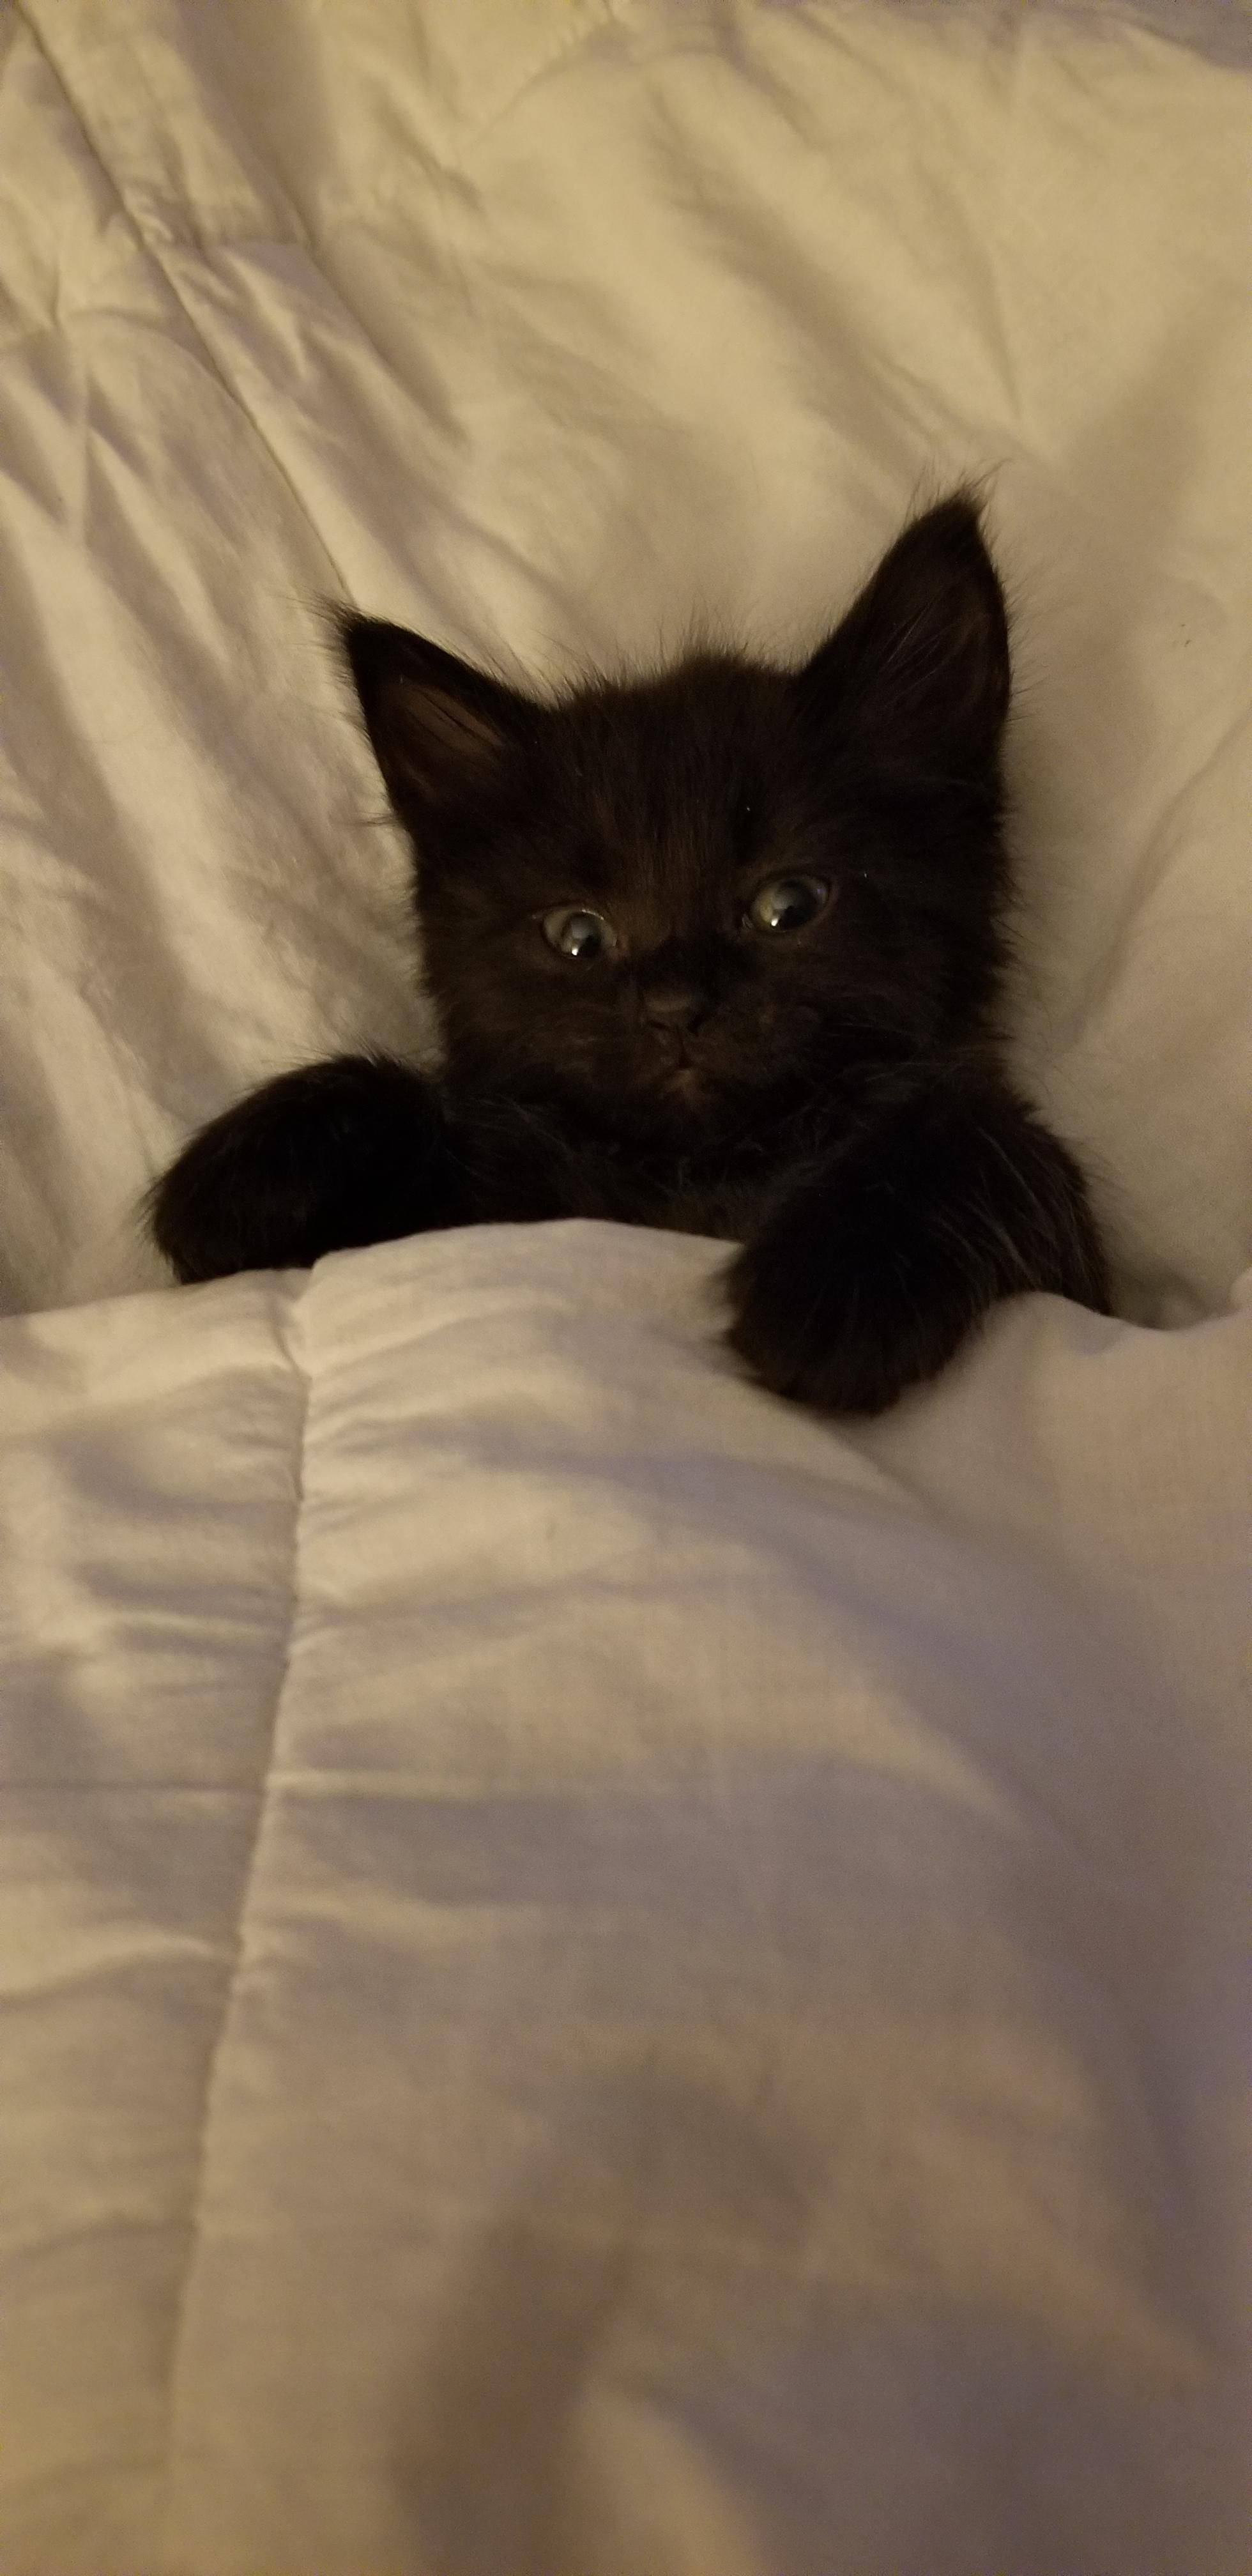 New Foster Kitten Loves To Be Tucked In Before Going To Sleep Kitten Love Foster Kittens Kitten